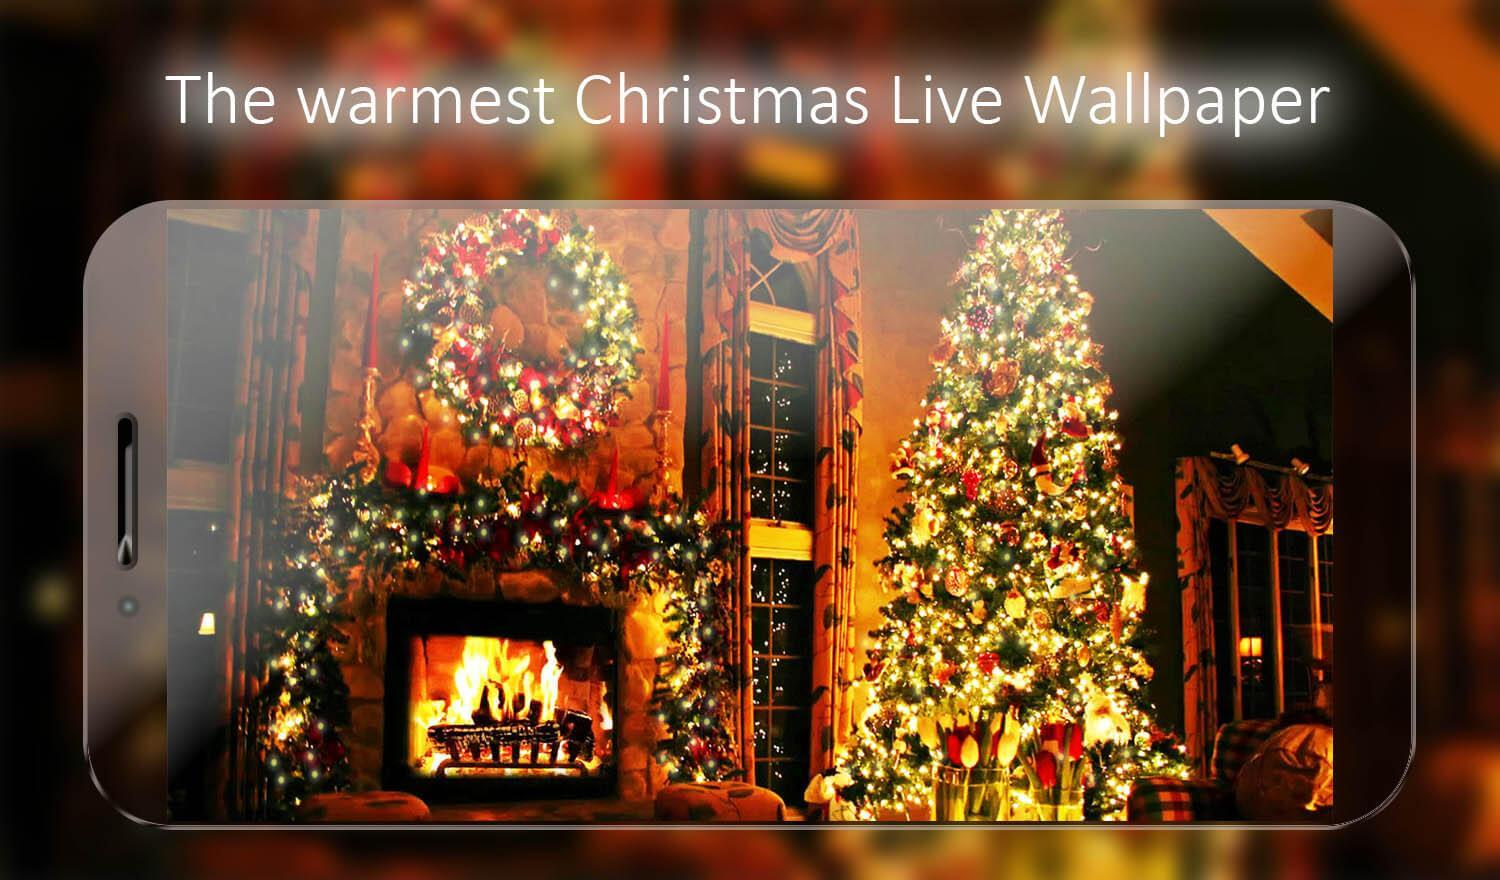 Christmas Fireplace Live Wallpaper for Android   APK Download 1500x880